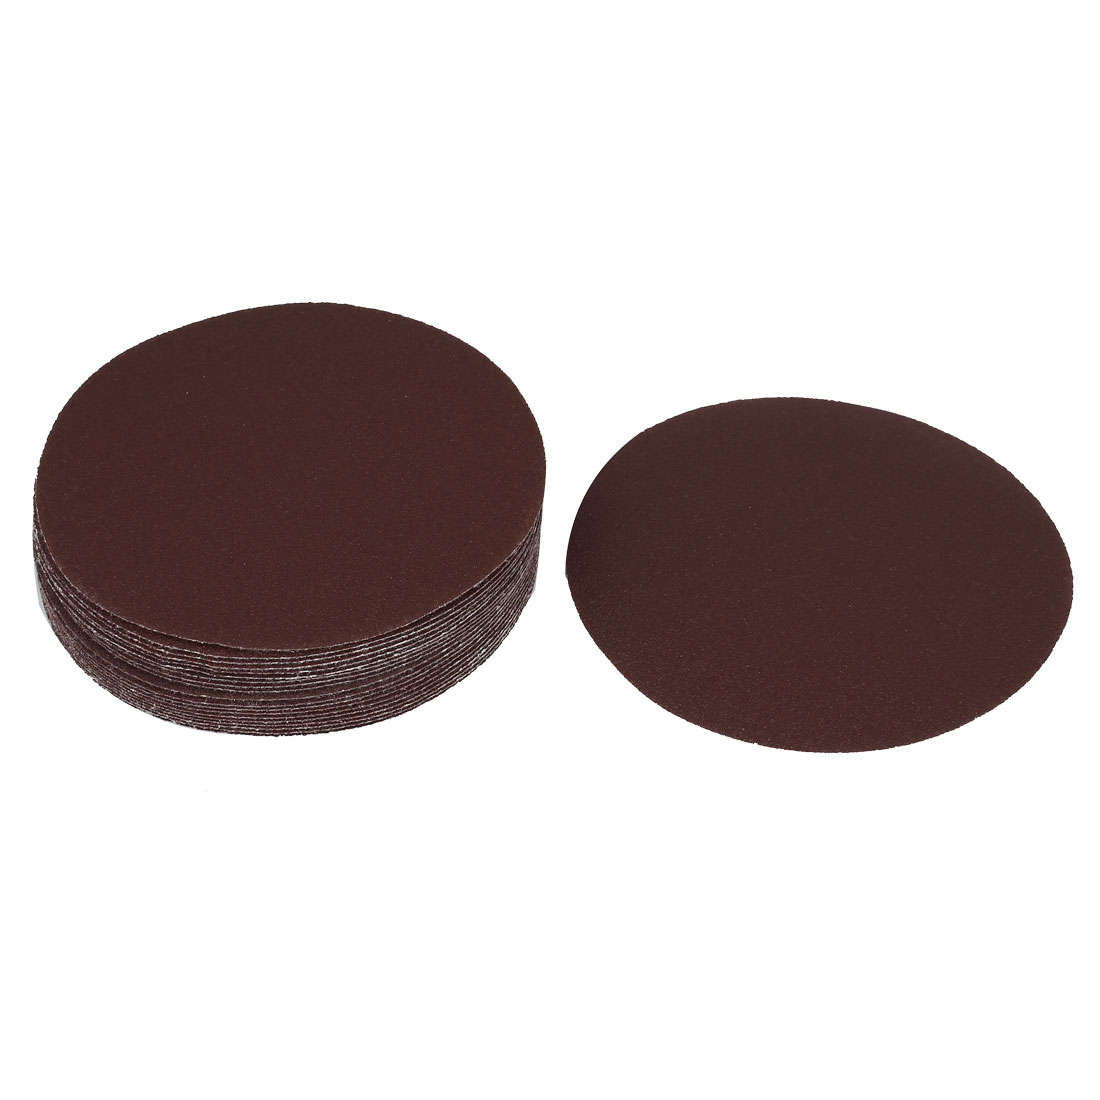 "5"" Dia Polishing Round Abrasive Sanding Sandpaper Sheet Disc 100 Grit 20 Pcs"